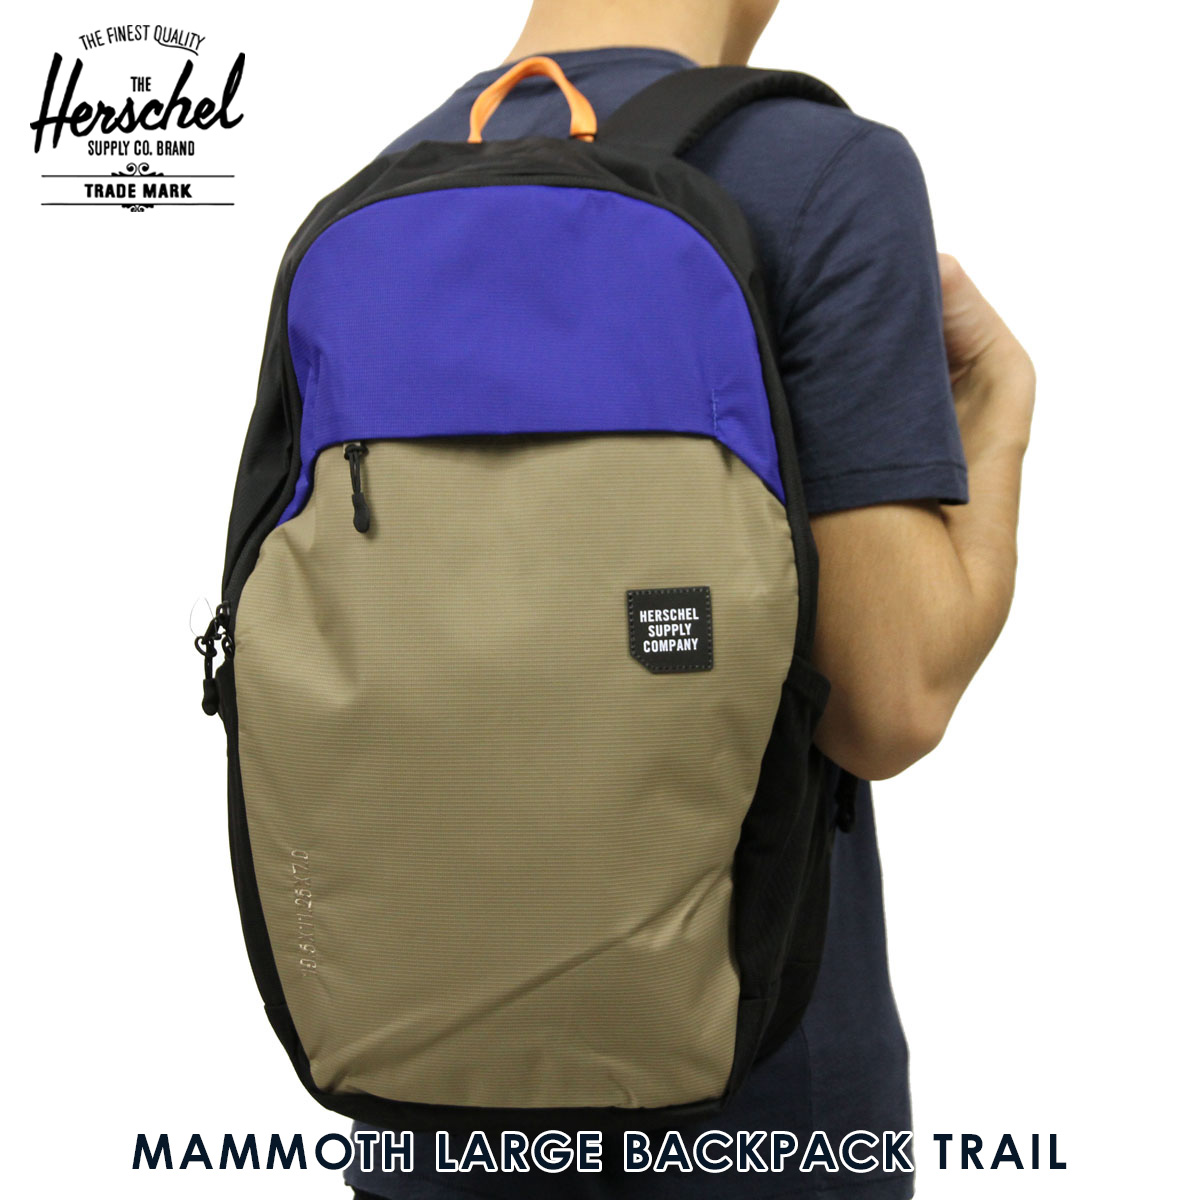 d8cc6cb56ff Hershel supply Herschel Supply regular store backpack MAMMOTH LARGE BACKPACK  TRAIL 10322-01628-OS BLACK BRINDLE SURF THE WEB 23L